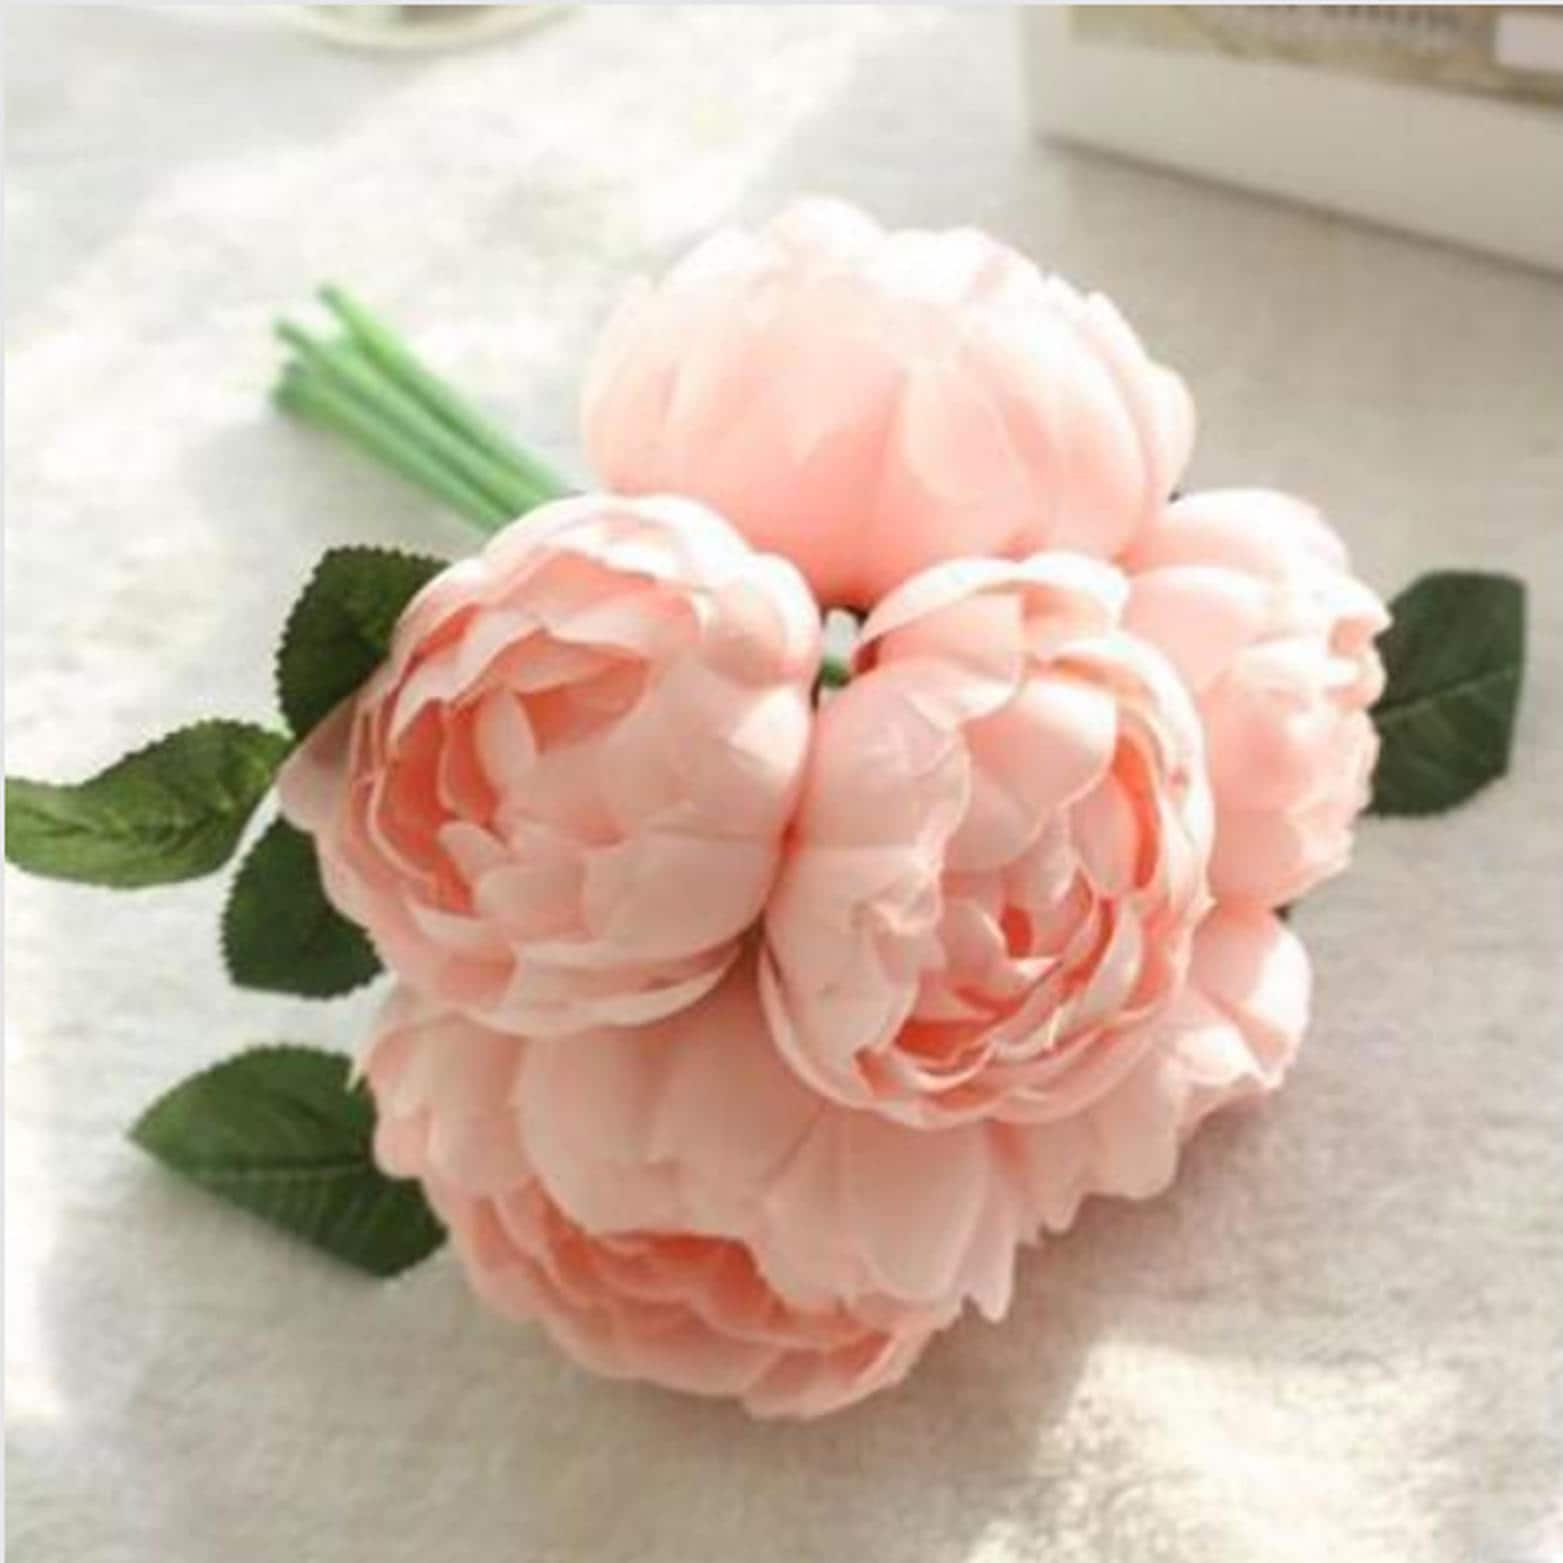 Pink peach peony bouquet fake flowers artificial flowers etsy zoom izmirmasajfo